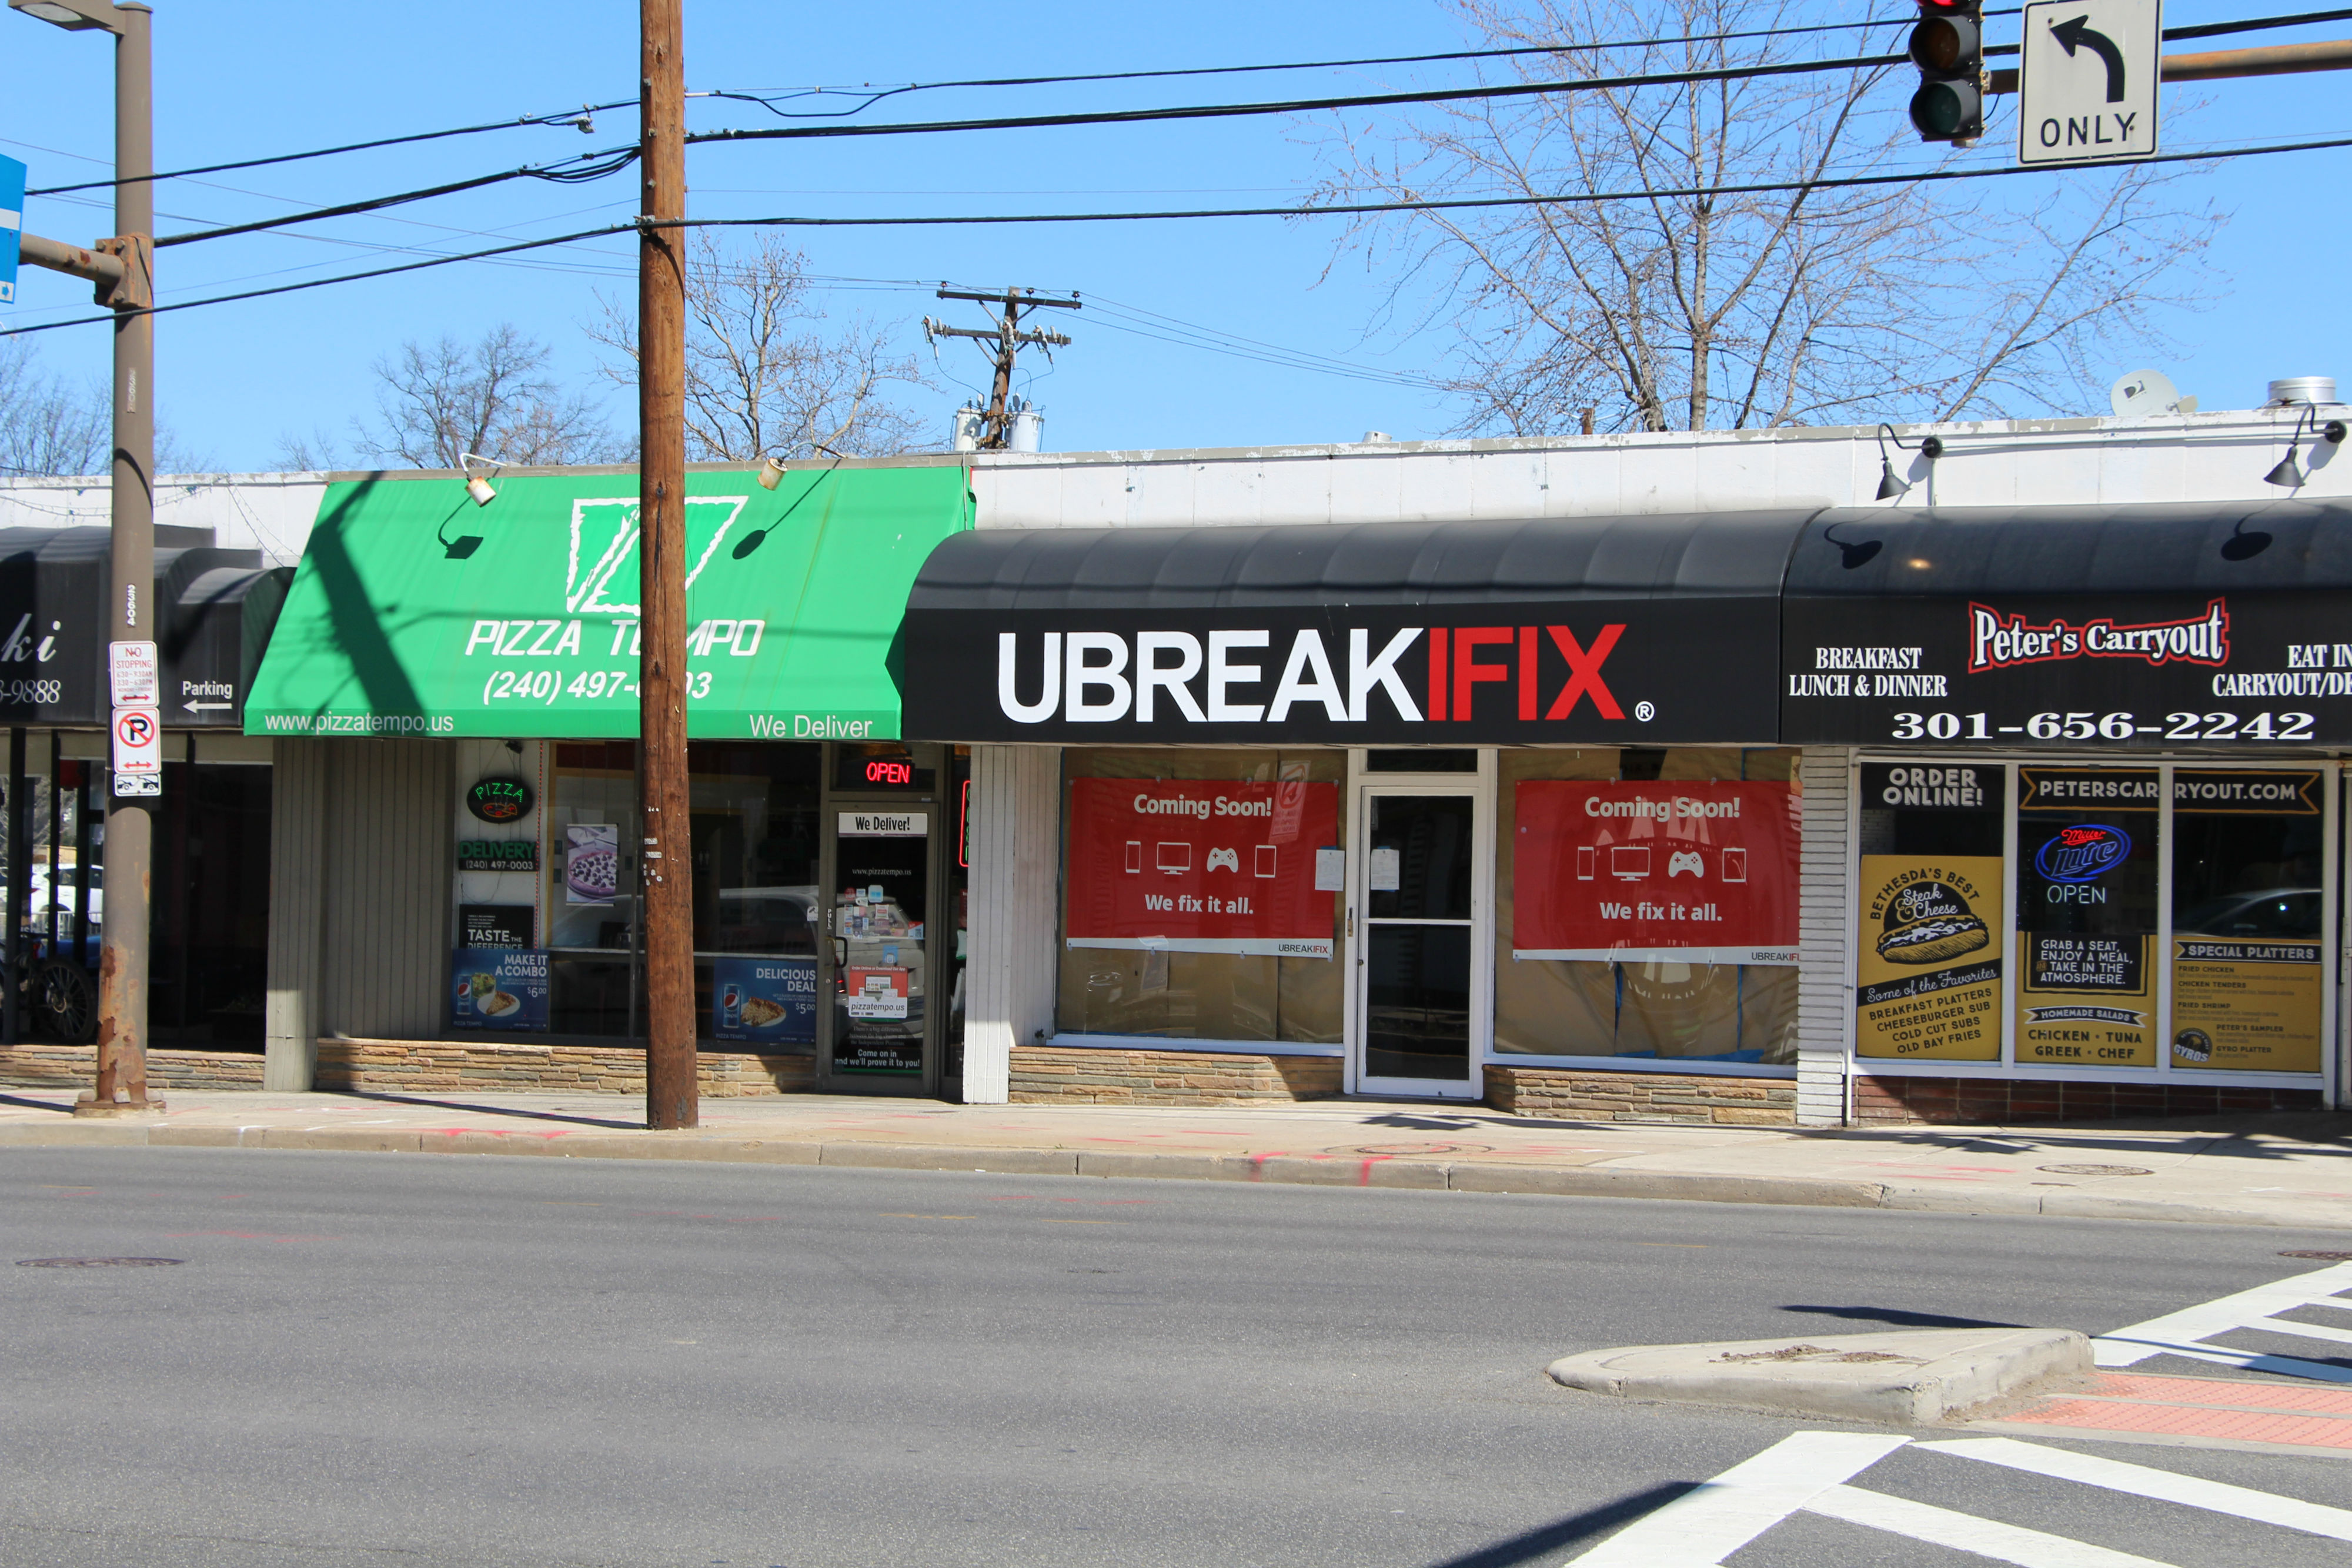 adult products in bethesda md Forge Suffer